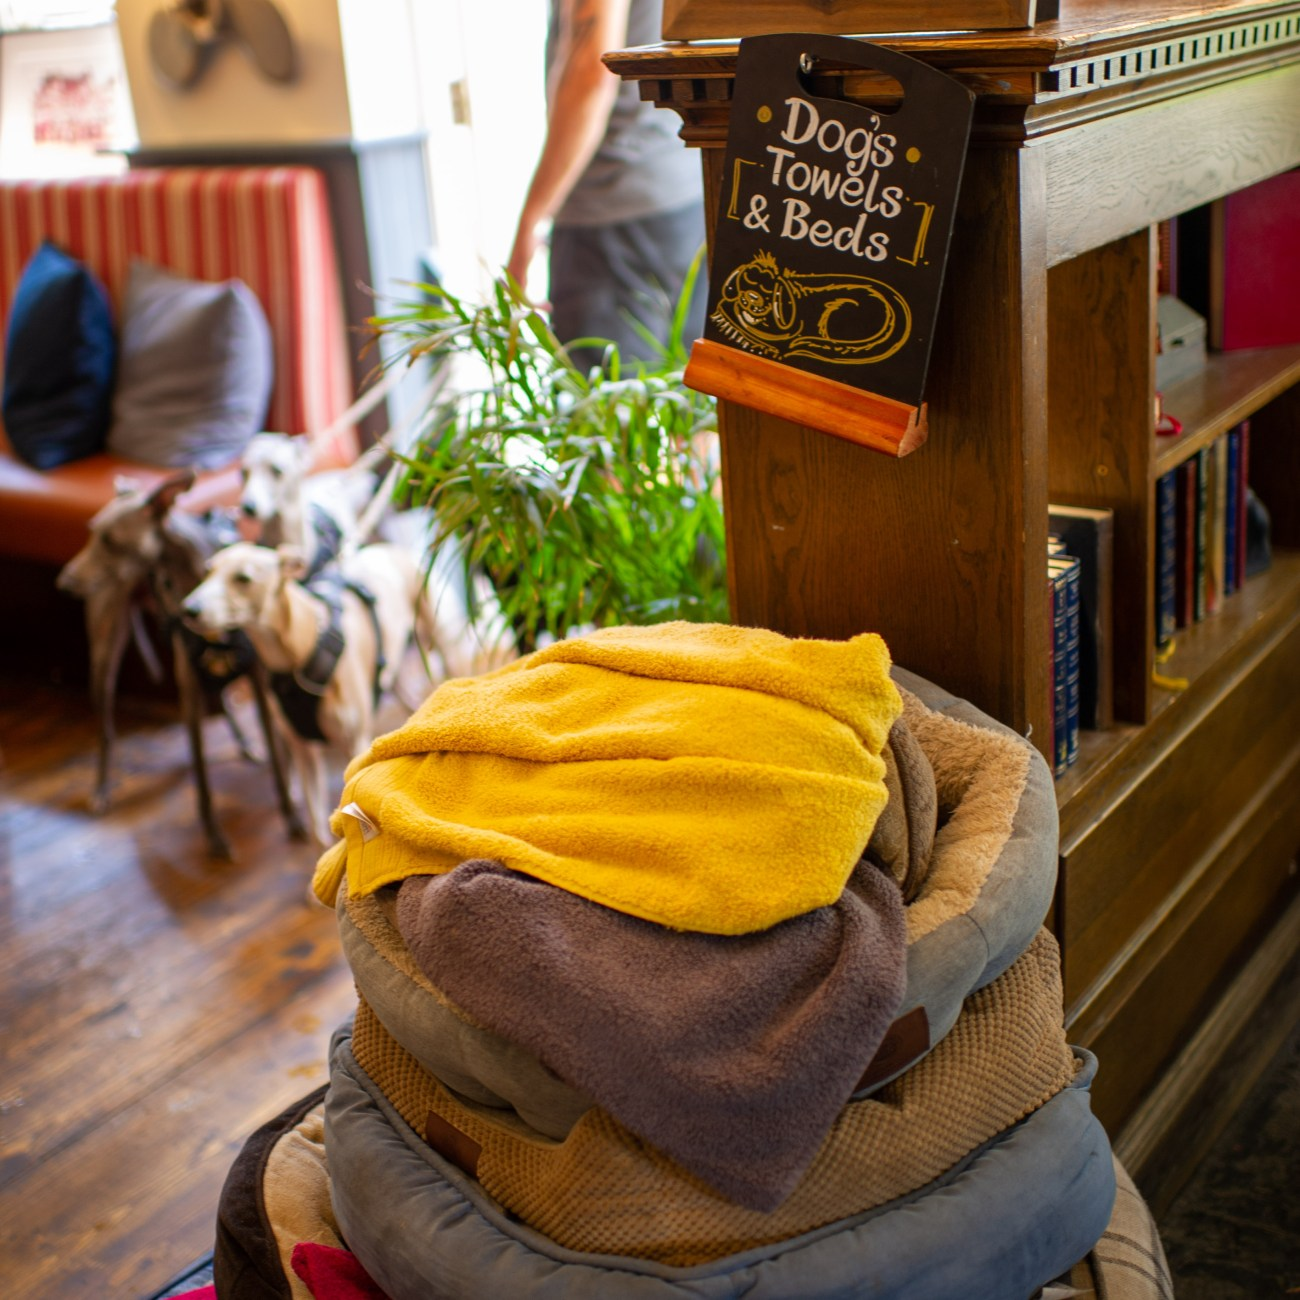 Stack of dog beds & towels at Guildford dog friendly pub.